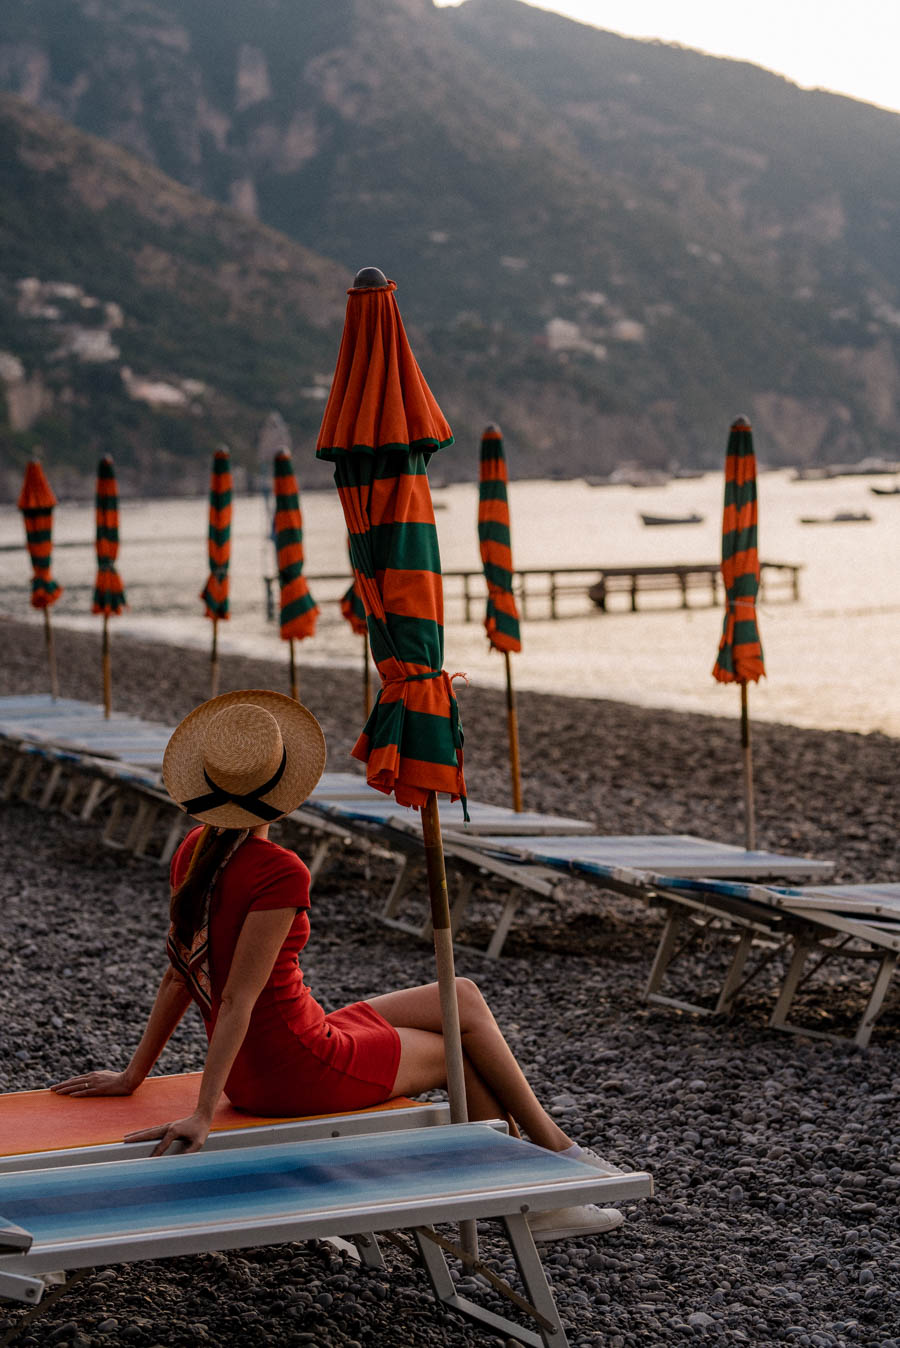 Check out my list for the best photo spots in Positano, Italy. Find out where to get the best Instagram photos in Positano.